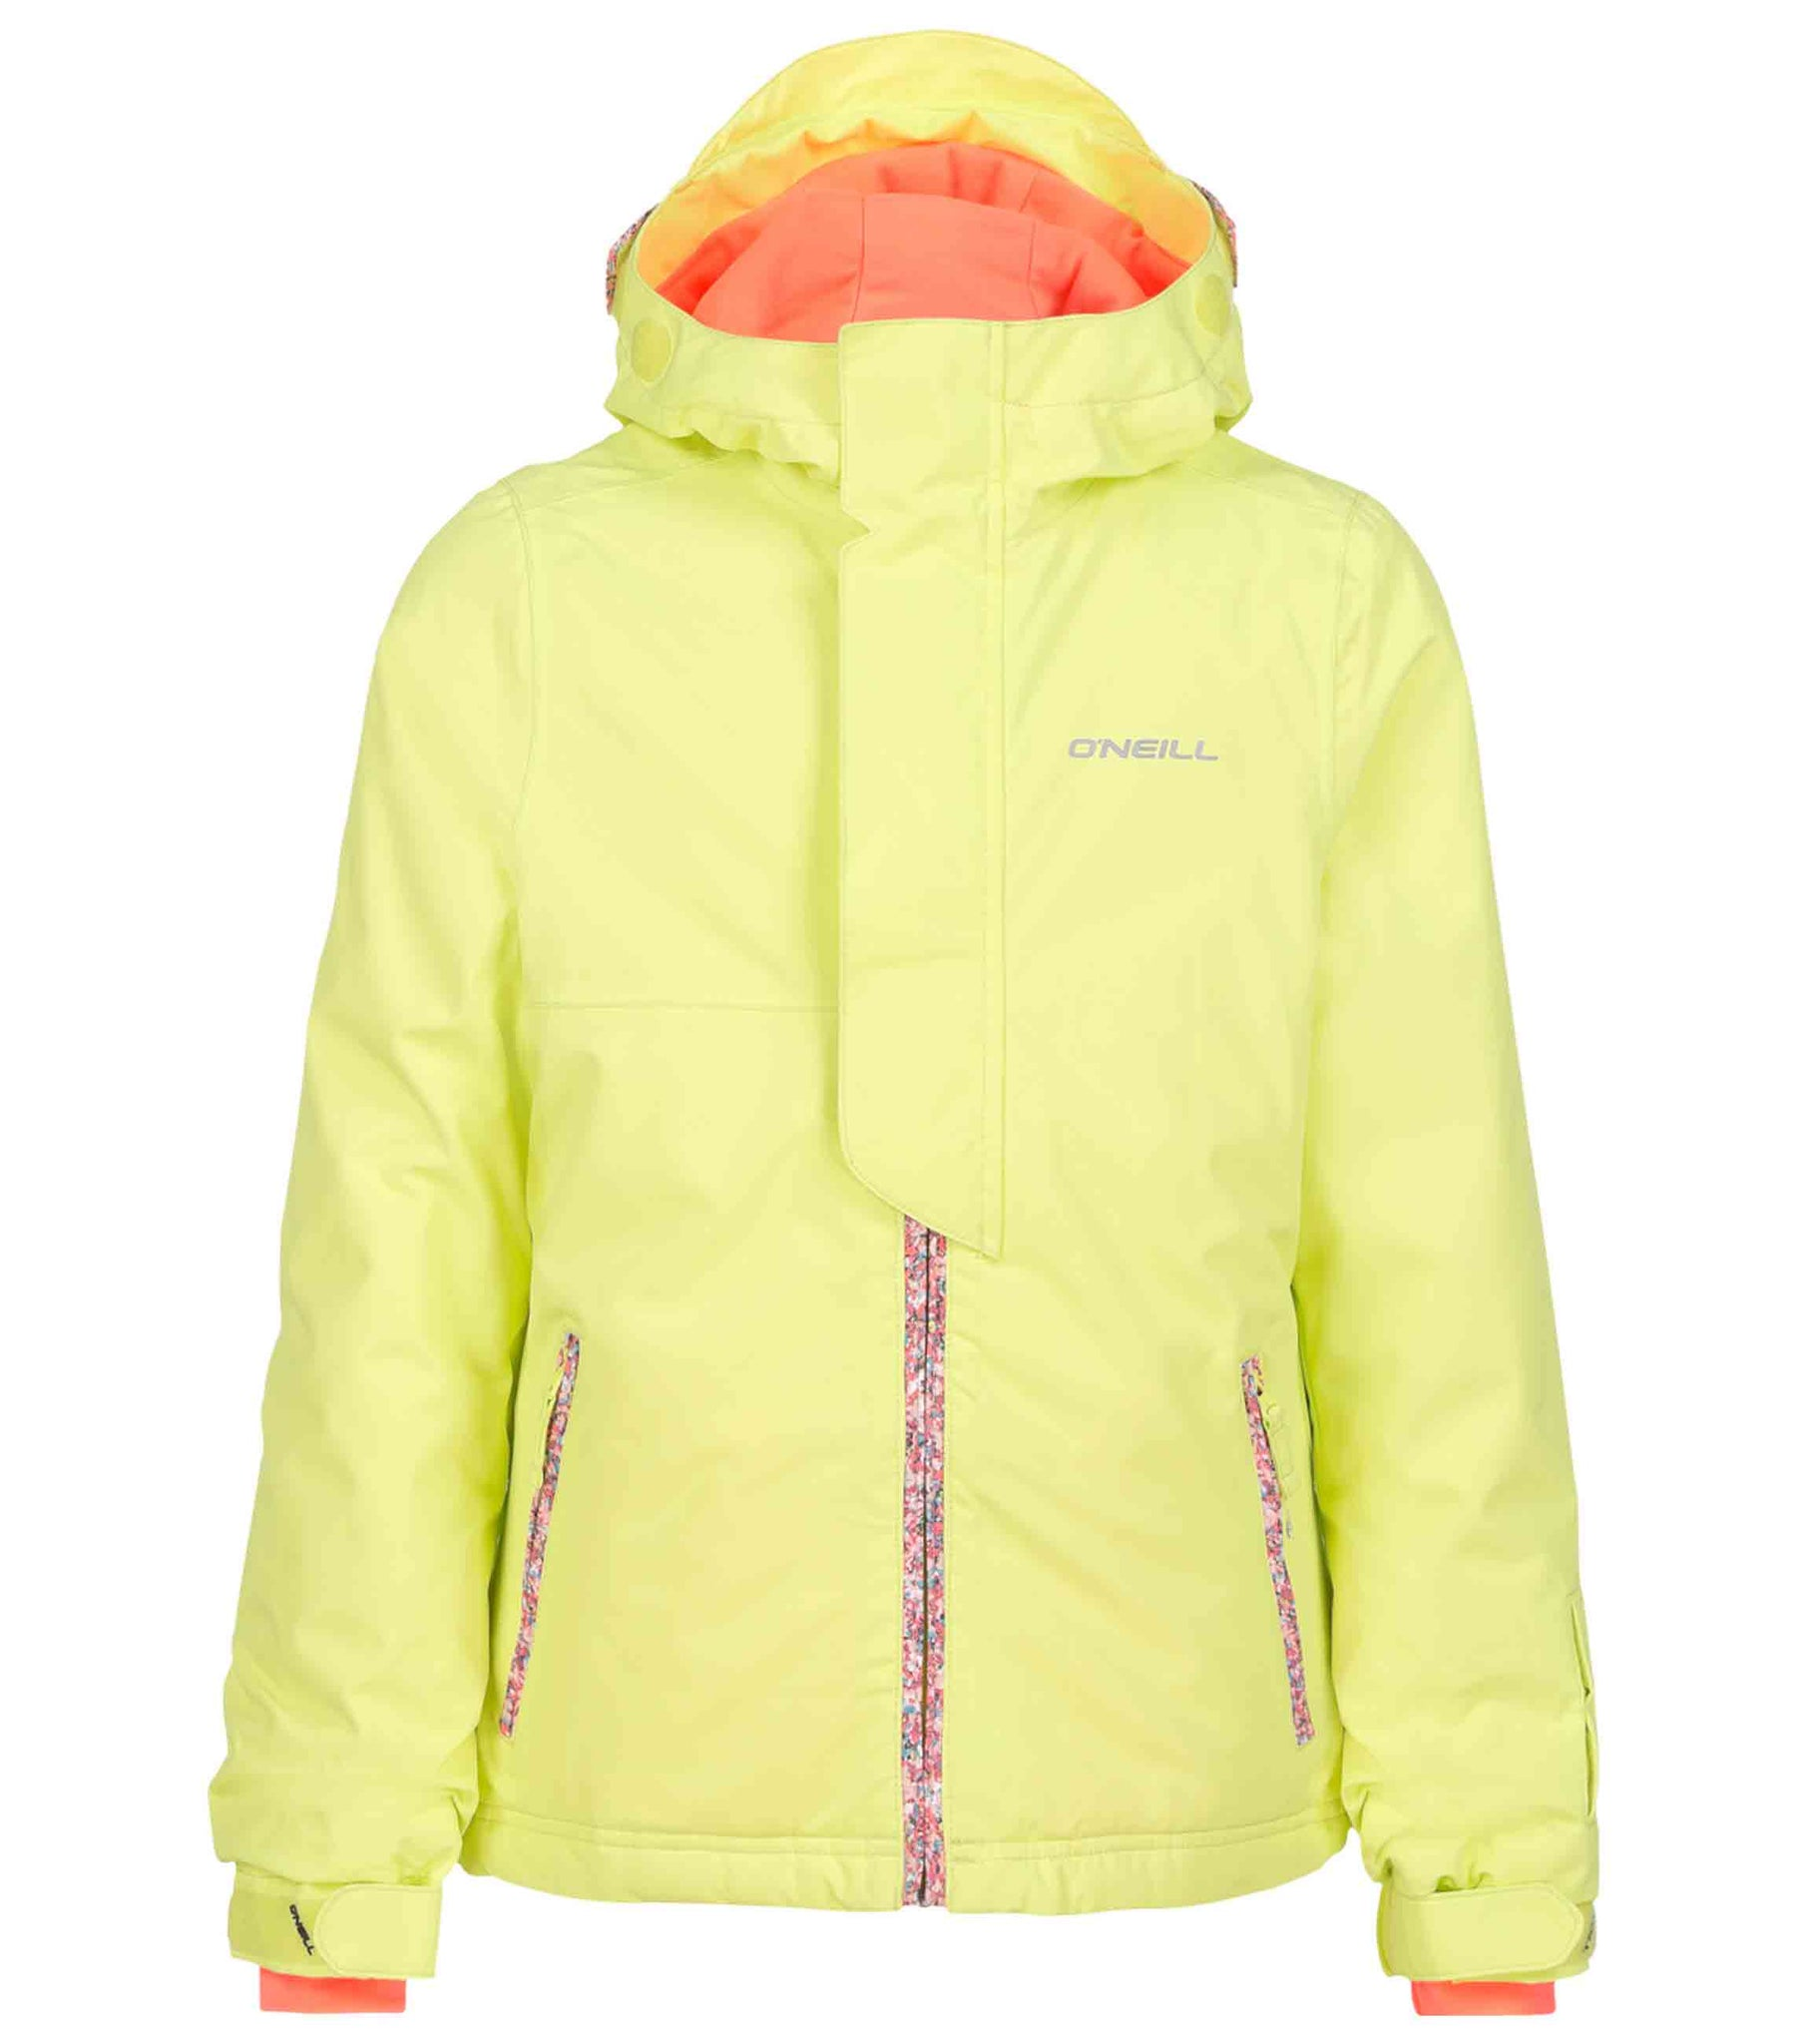 GIRLS JEWEL SWOW JACKET